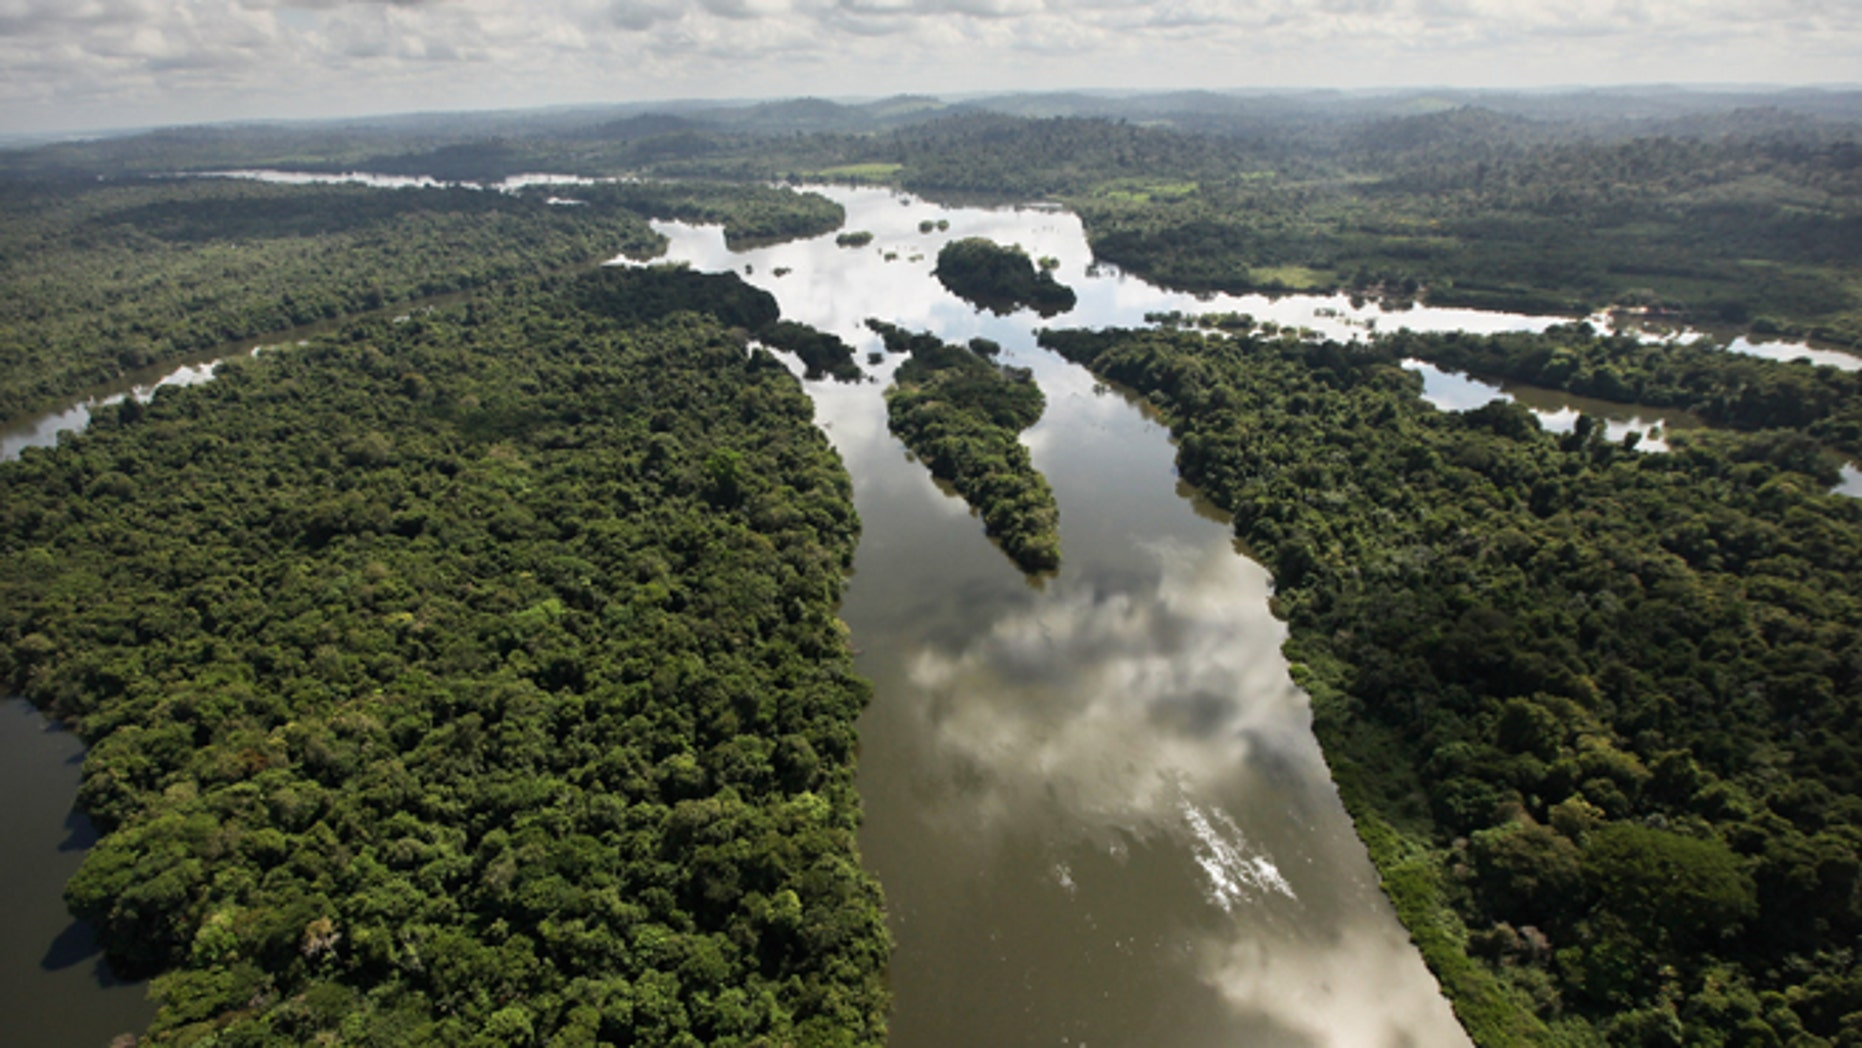 NEAR ALTAMIRA, BRAZIL - JUNE 15: The Xingu River flows near the area where the Belo Monte dam complex is under construction in the Amazon basin on June 15, 2012 near Altamira, Brazil. Belo Monte will be the world's third-largest hydroelectric project and will displace up to 20,000 people while diverting the Xingu River and flooding as much as 230 square miles of rainforest. The controversial project is one of around 60 hydroelectric projects Brazil has planned in the Amazon to generate electricity for its rapidly expanding economy. While environmentalists and indigenous groups oppose the dam, many Brazilians support the project. The Brazilian Amazon, home to 60 percent of the world's largest forest and 20 percent of the Earth's oxygen, remains threatened by the rapid development of the country. The area is currently populated by over 20 million people and is challenged by deforestation, agriculture, mining, a governmental dam building spree, illegal land speculation including the occupation of forest reserves and indigenous land and other issues. Over 100 heads of state and tens of thousands of participants and protesters will descend on Rio de Janeiro, Brazil, later this month for the Rio+20 United Nations Conference on Sustainable Development or 'Earth Summit'. Host Brazil is caught up in its own dilemma between accelerated growth and environmental preservation.   (Photo by Mario Tama/Getty Images)